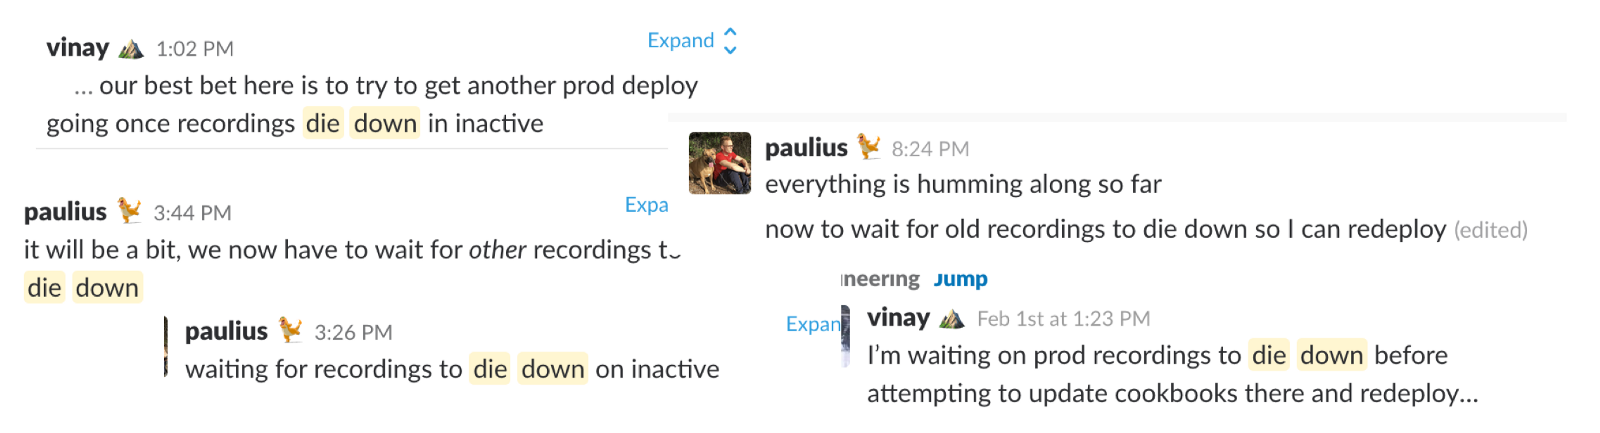 Slack messages about waiting for recordings